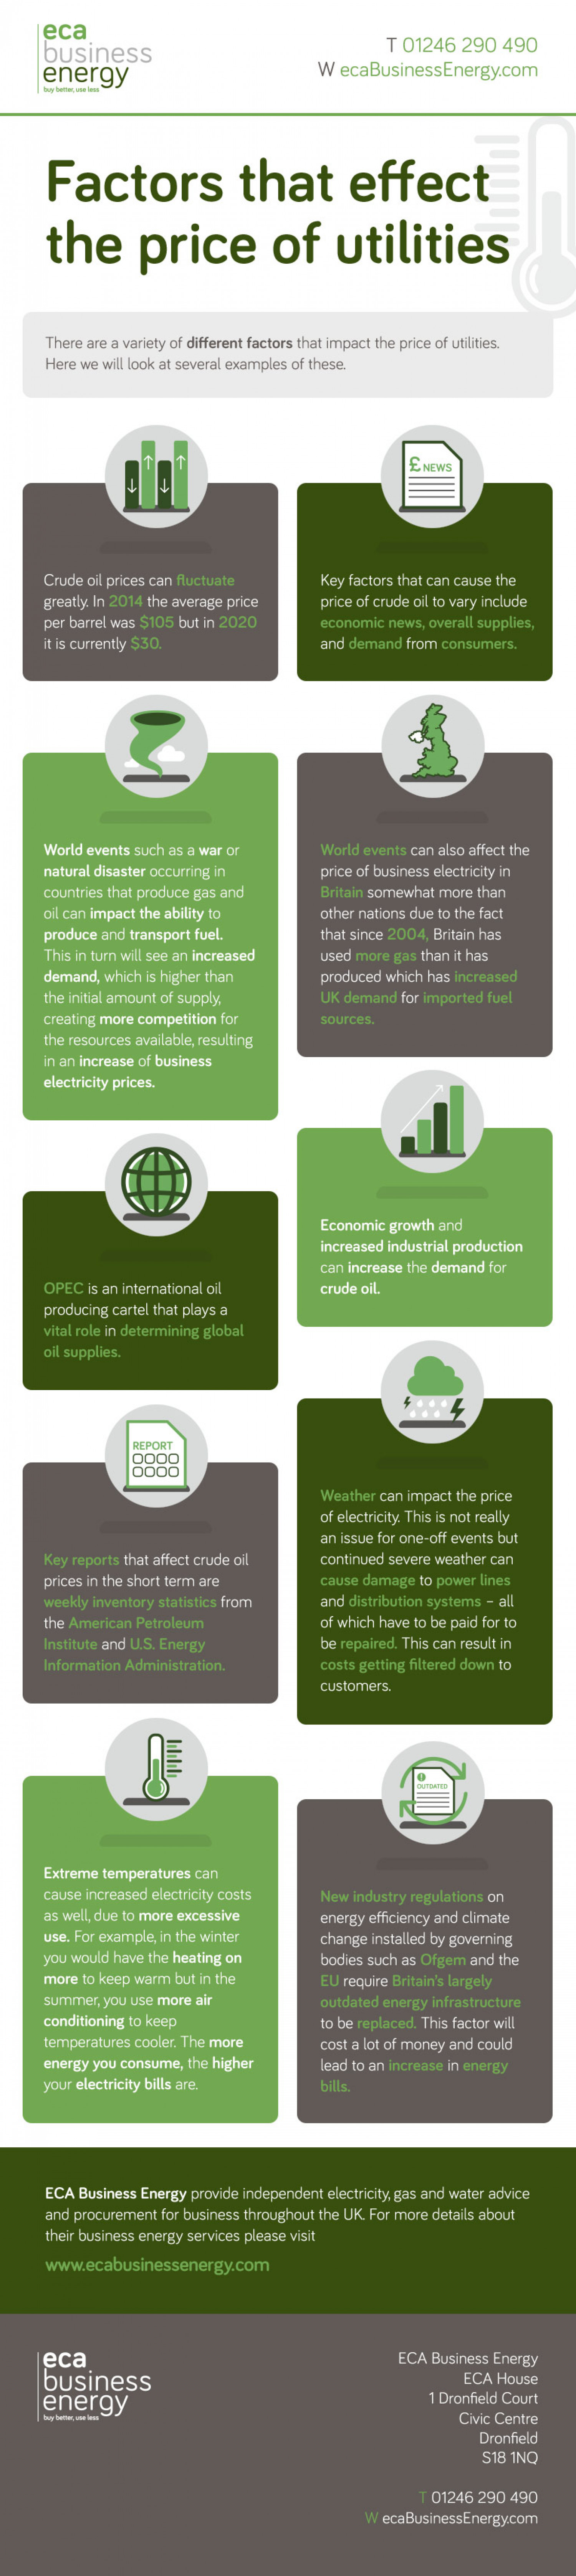 Factors That Effect the Price of Utilities Infographic